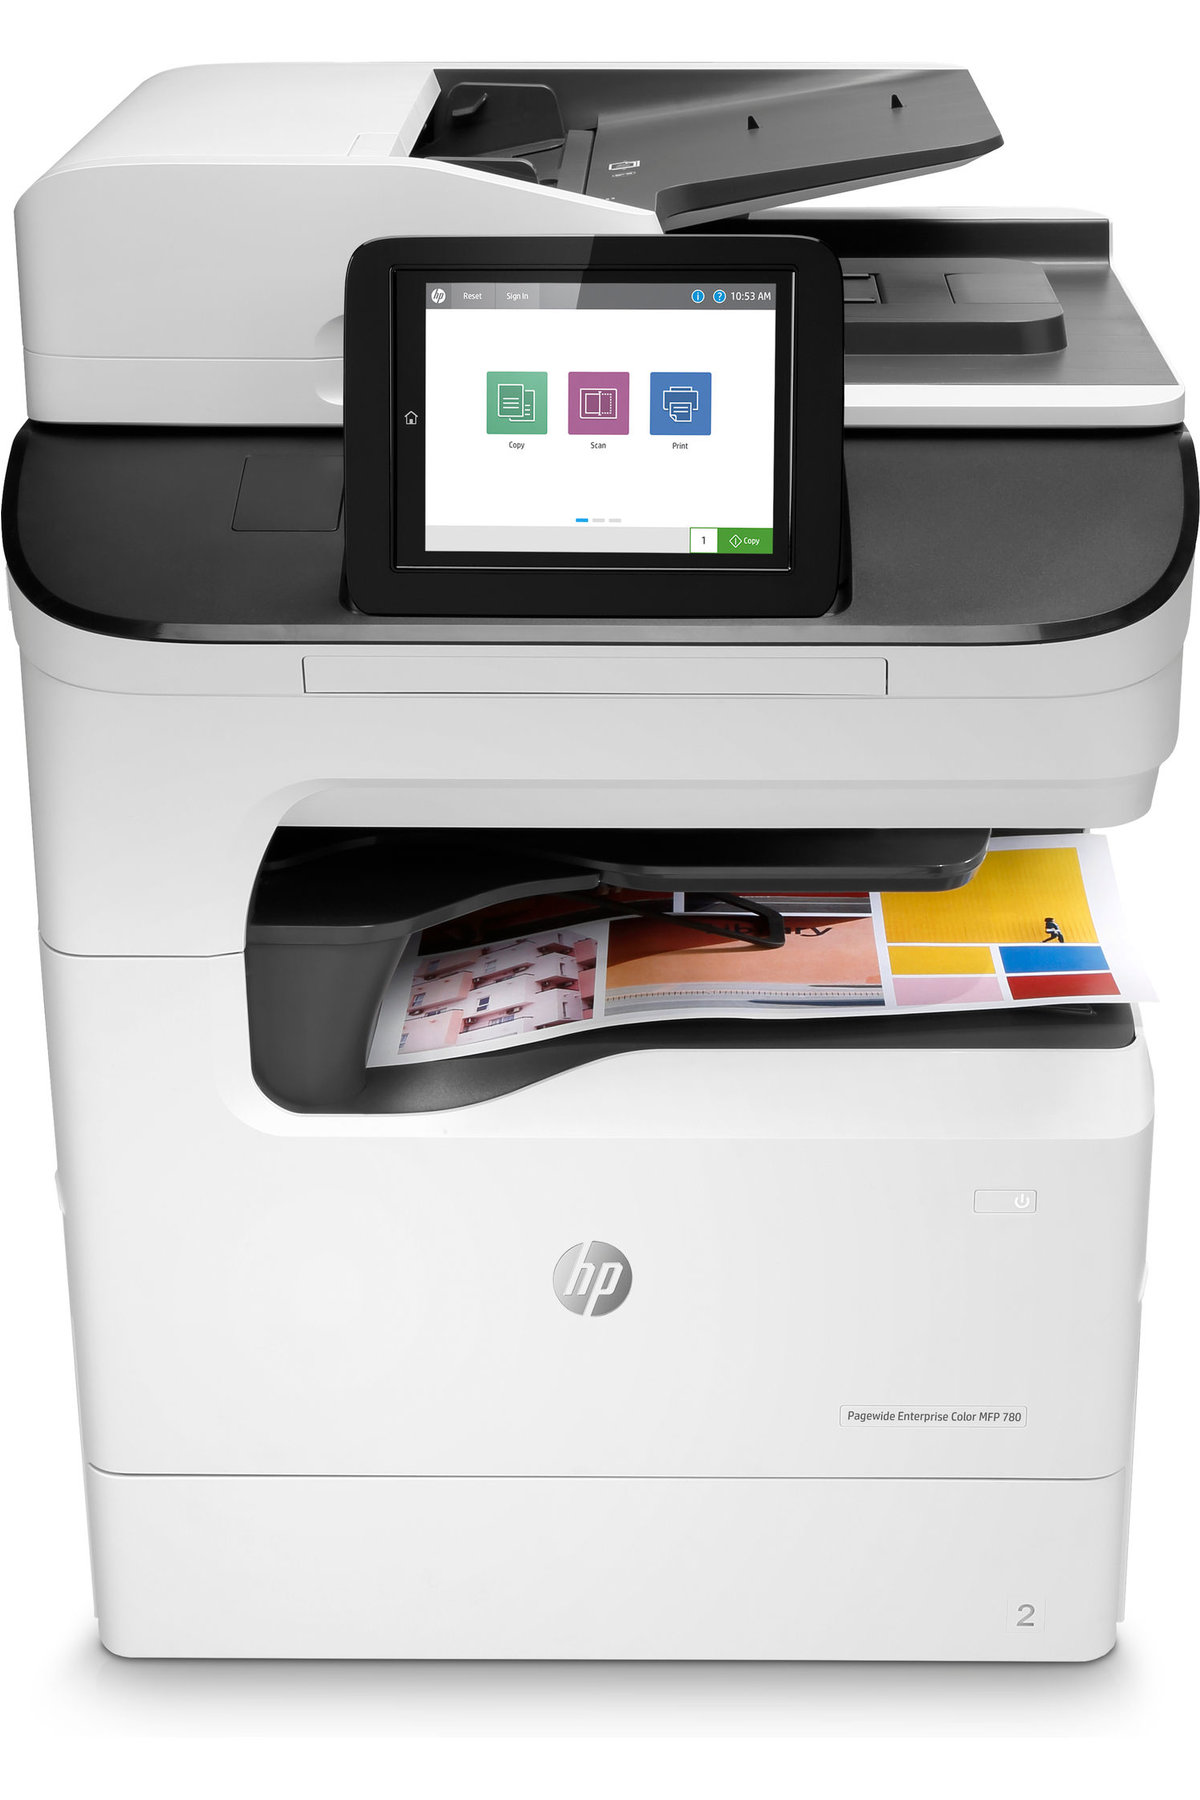 HP PageWide Enterprise Color MFP 780dns - multifunction printer - color